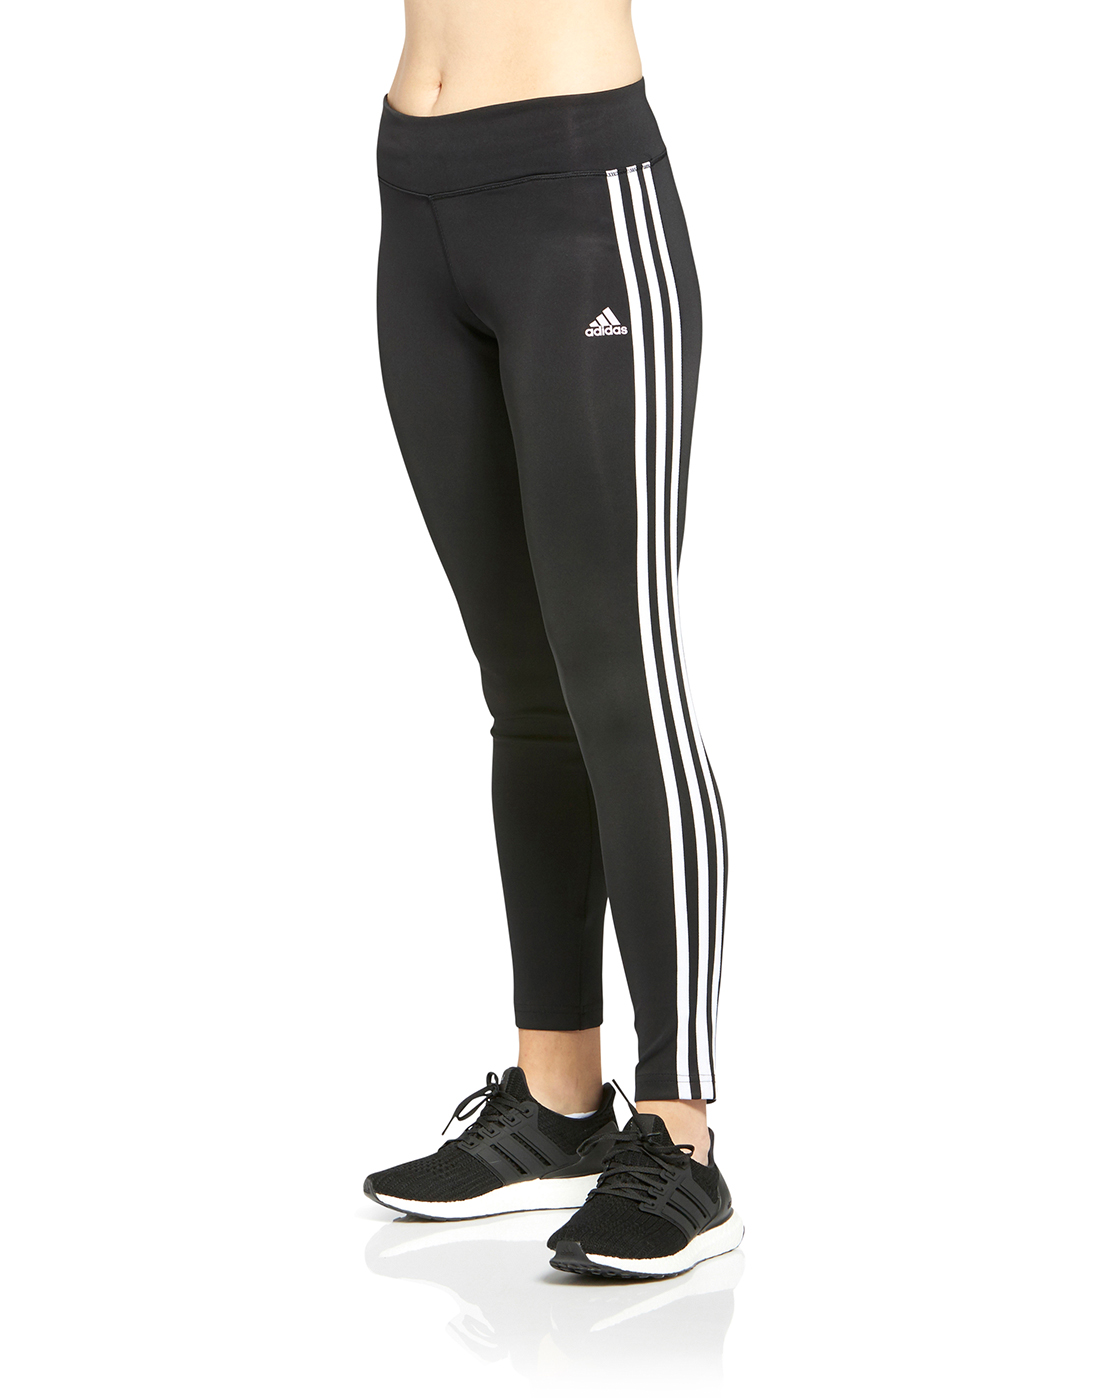 e2dfc9a6868617 adidas Womens 3-Stripes Tight | Life Style Sports